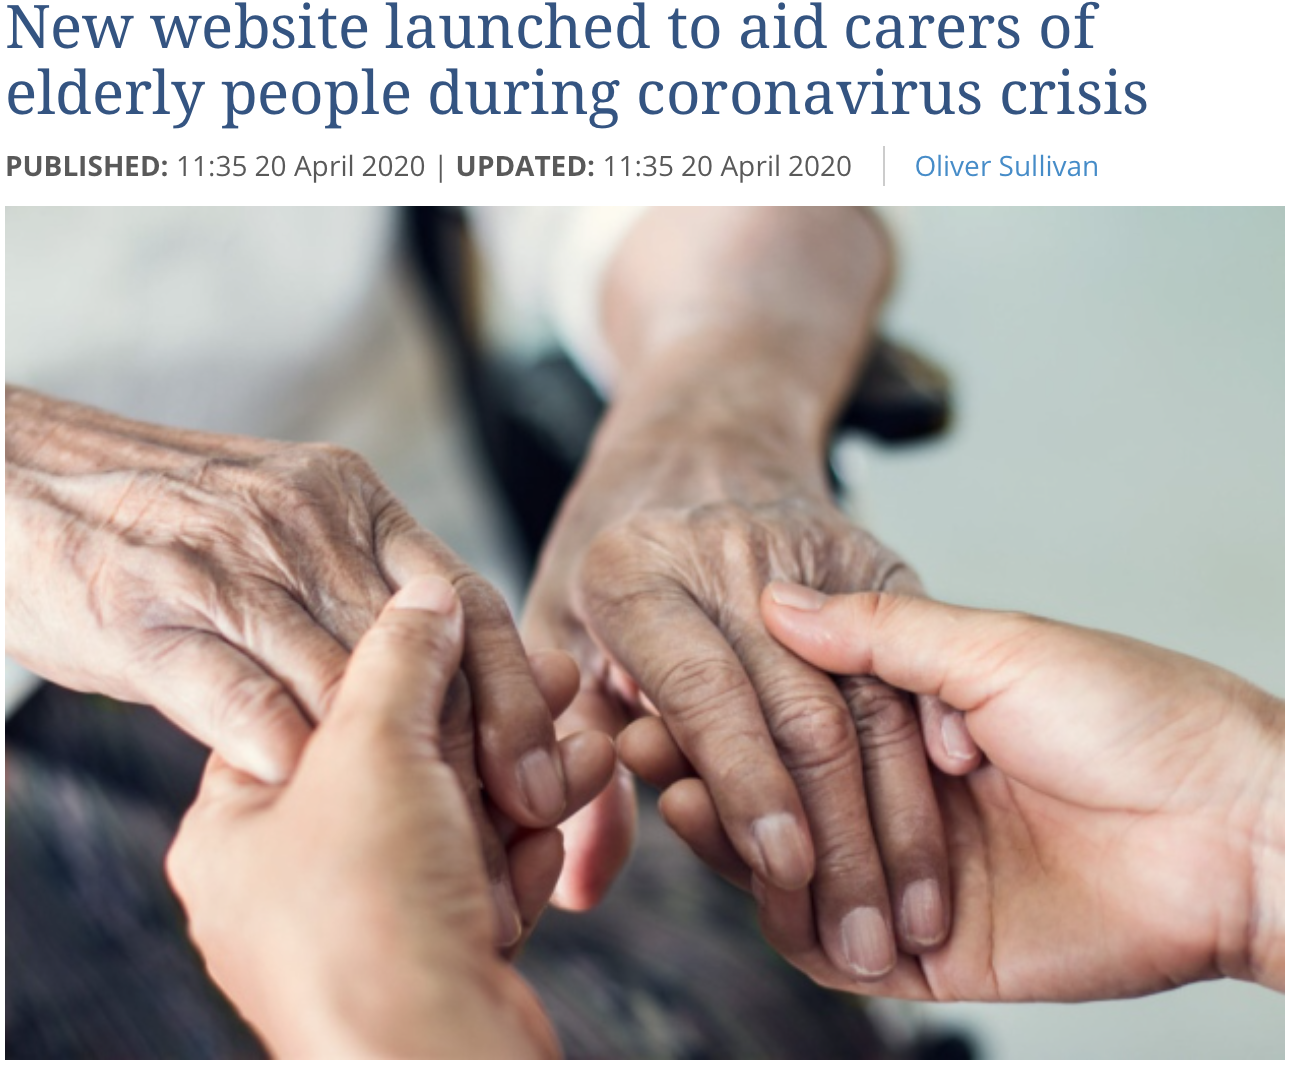 East Anglian Daily Times 20 April 2020 - New Suffolk website for carers